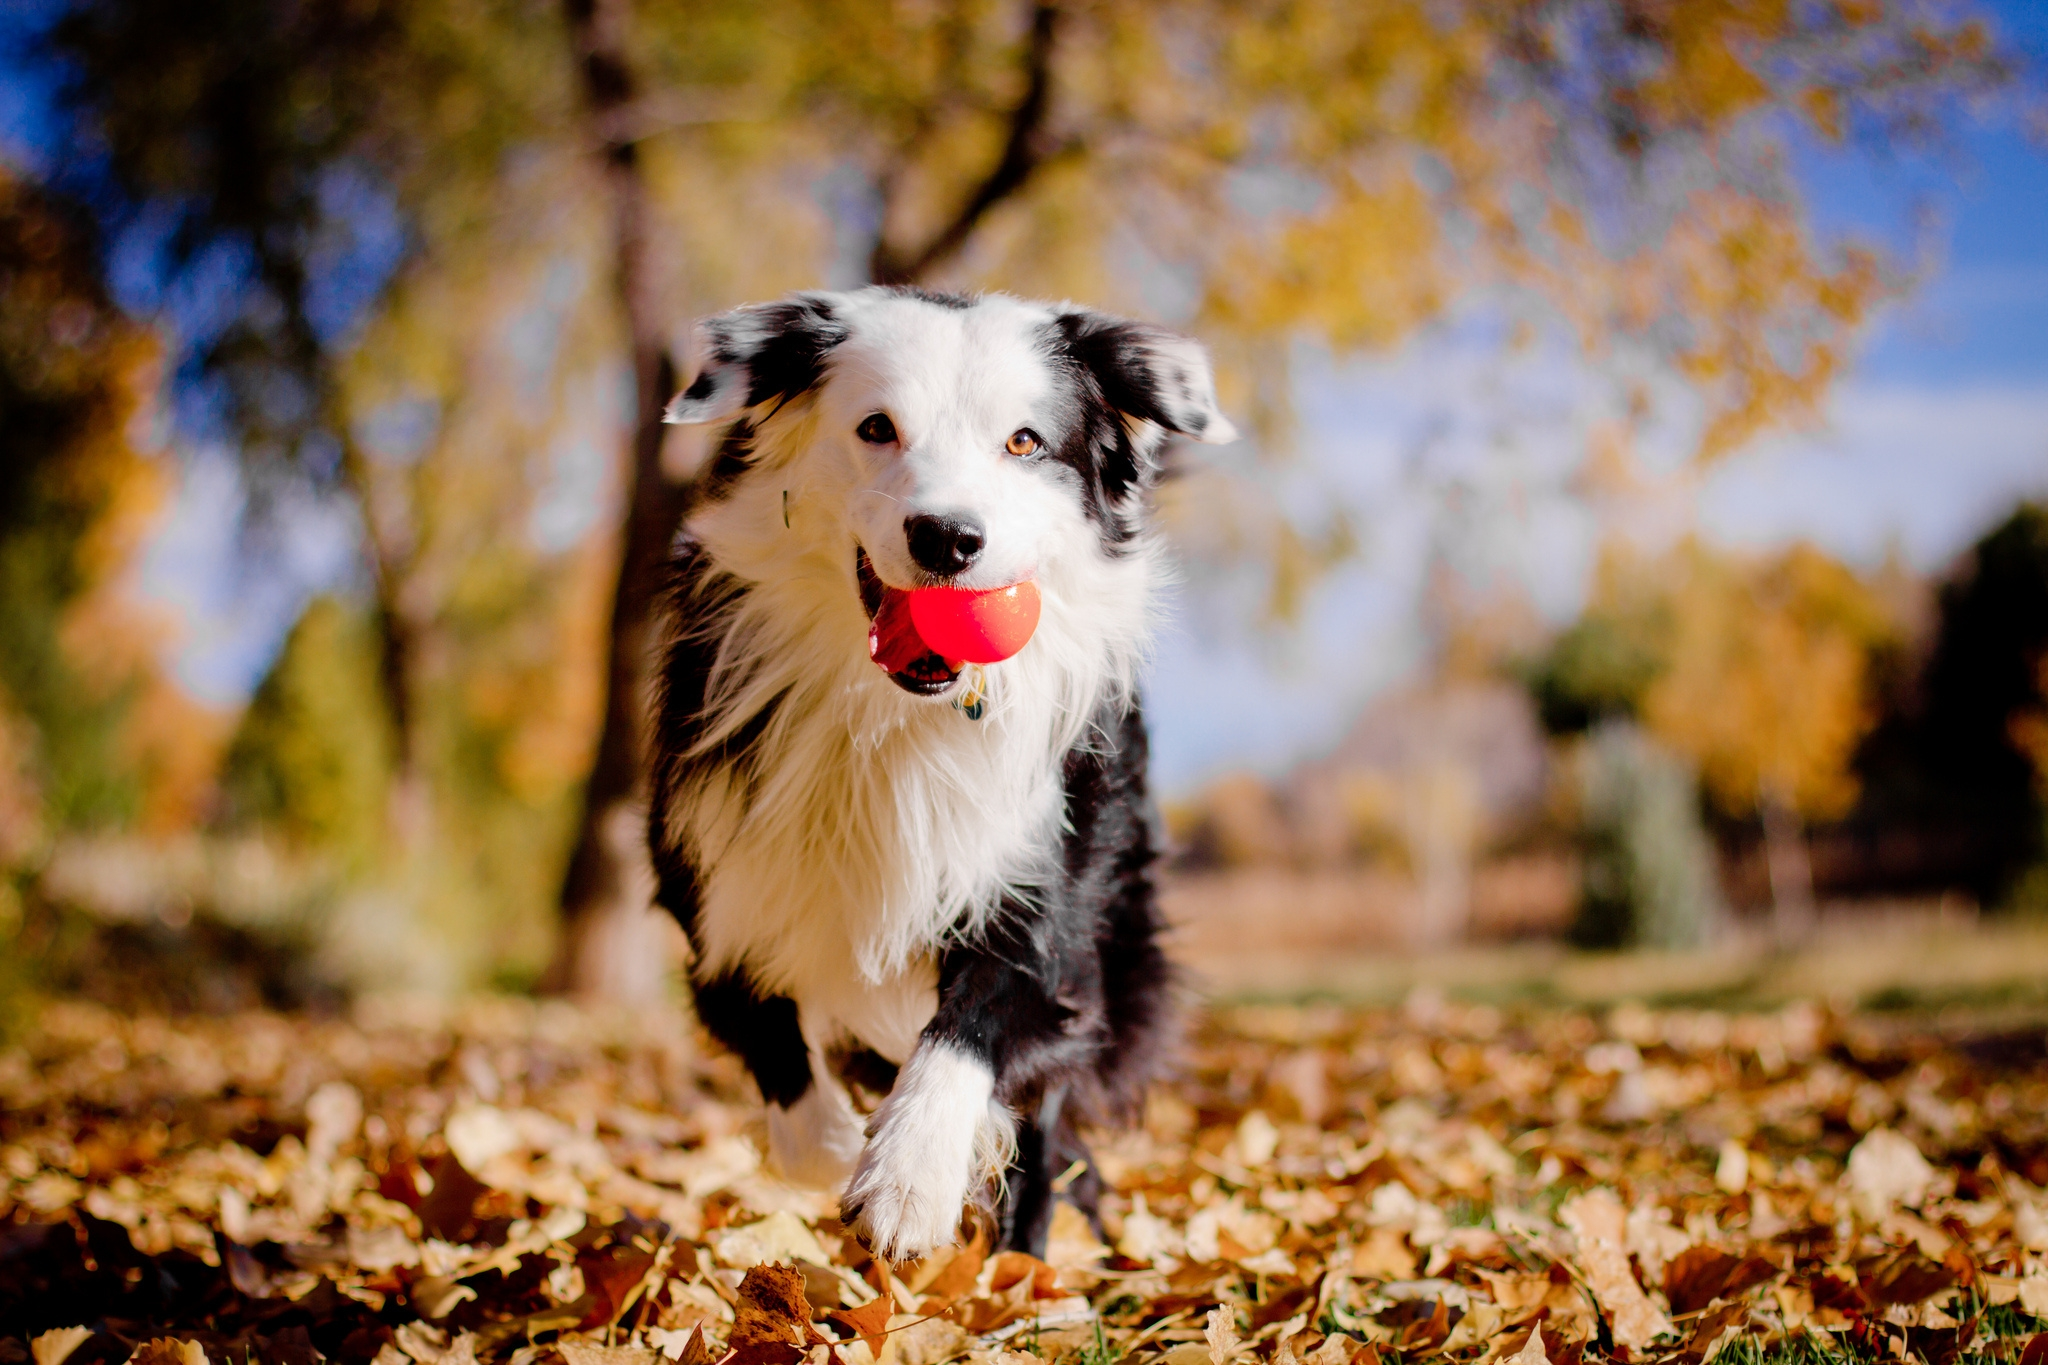 62601 download wallpaper Animals, Border Collie, Dog, Ball, Leaves, Autumn, Mood screensavers and pictures for free